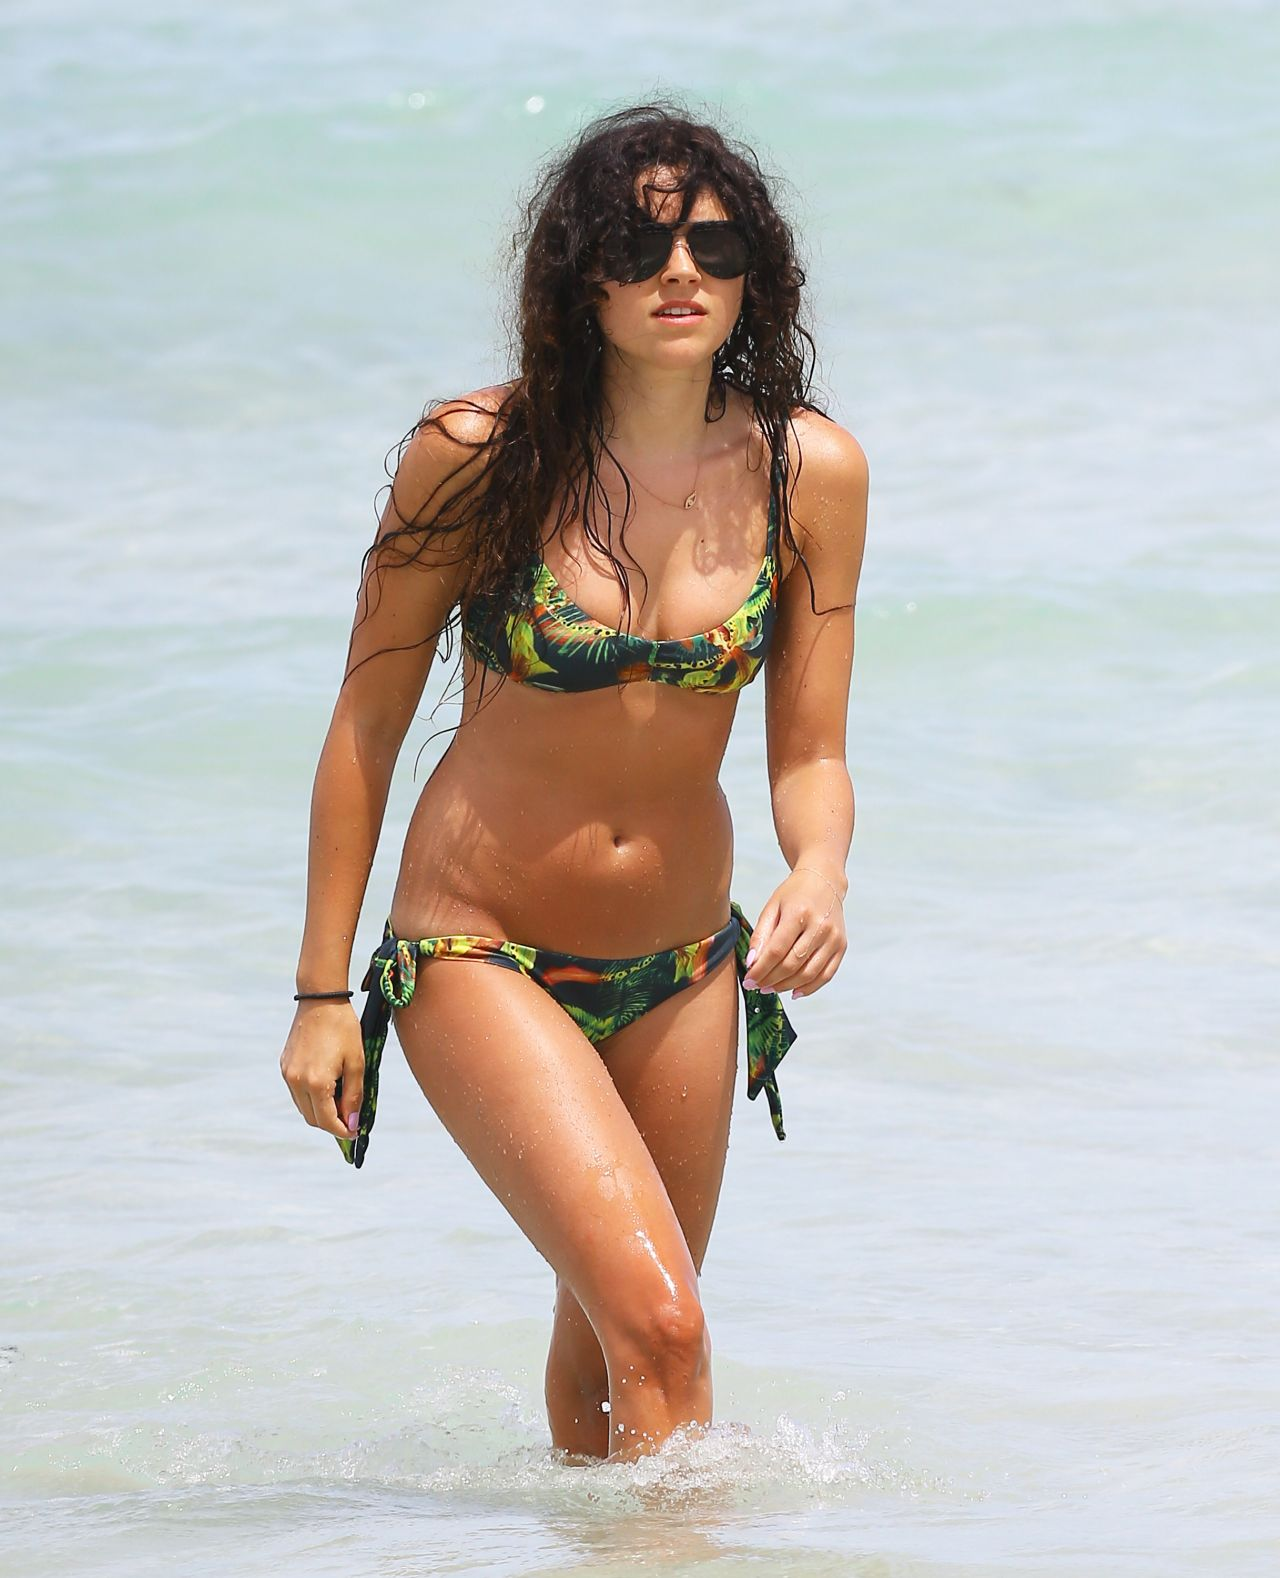 Eliza Doolittle Wearing a Bikini in Miami - May 2014